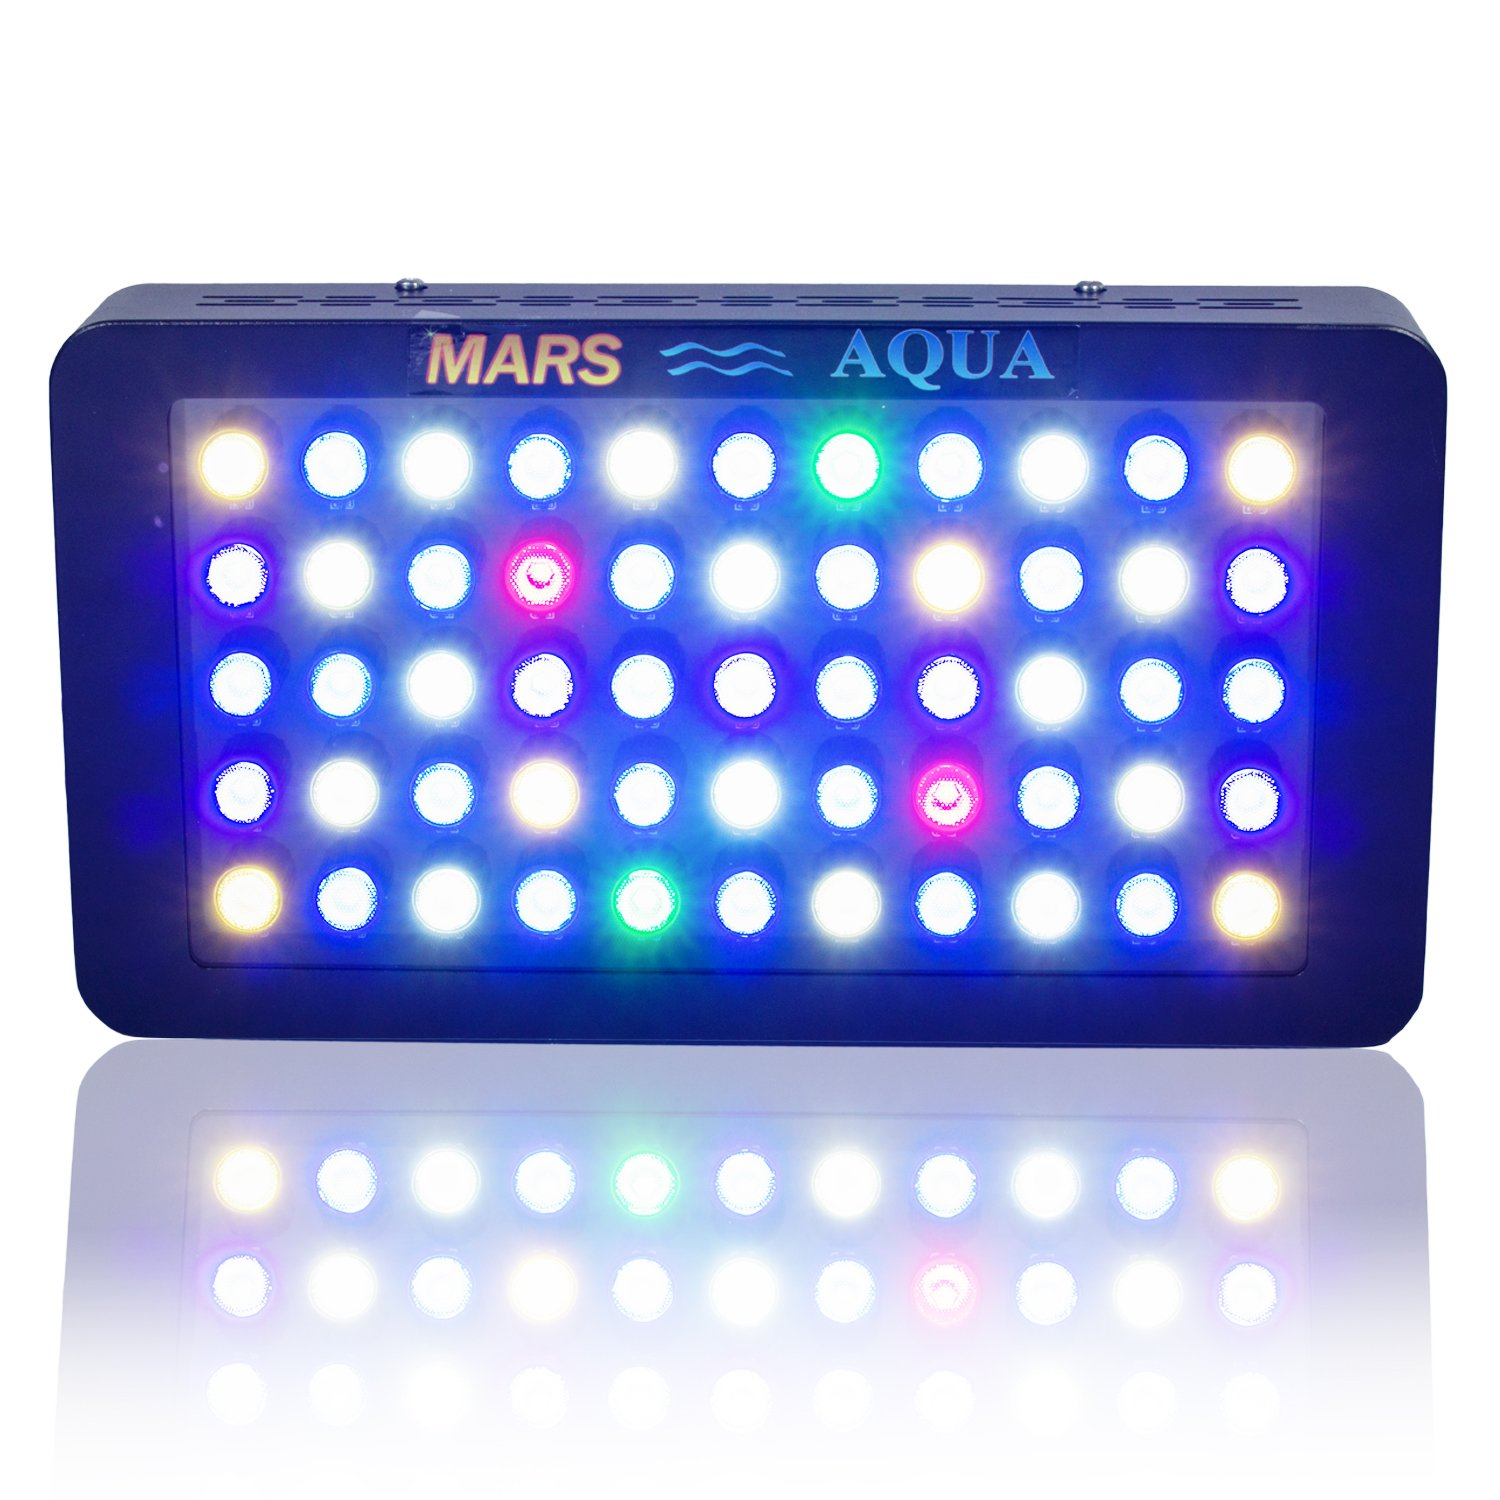 MarsAqua Dimmable 165W LED Aquarium Light Lighting Full Spectrum For Fish Freshwater and Saltwater Coral Tank Blue and White LPS/SPS